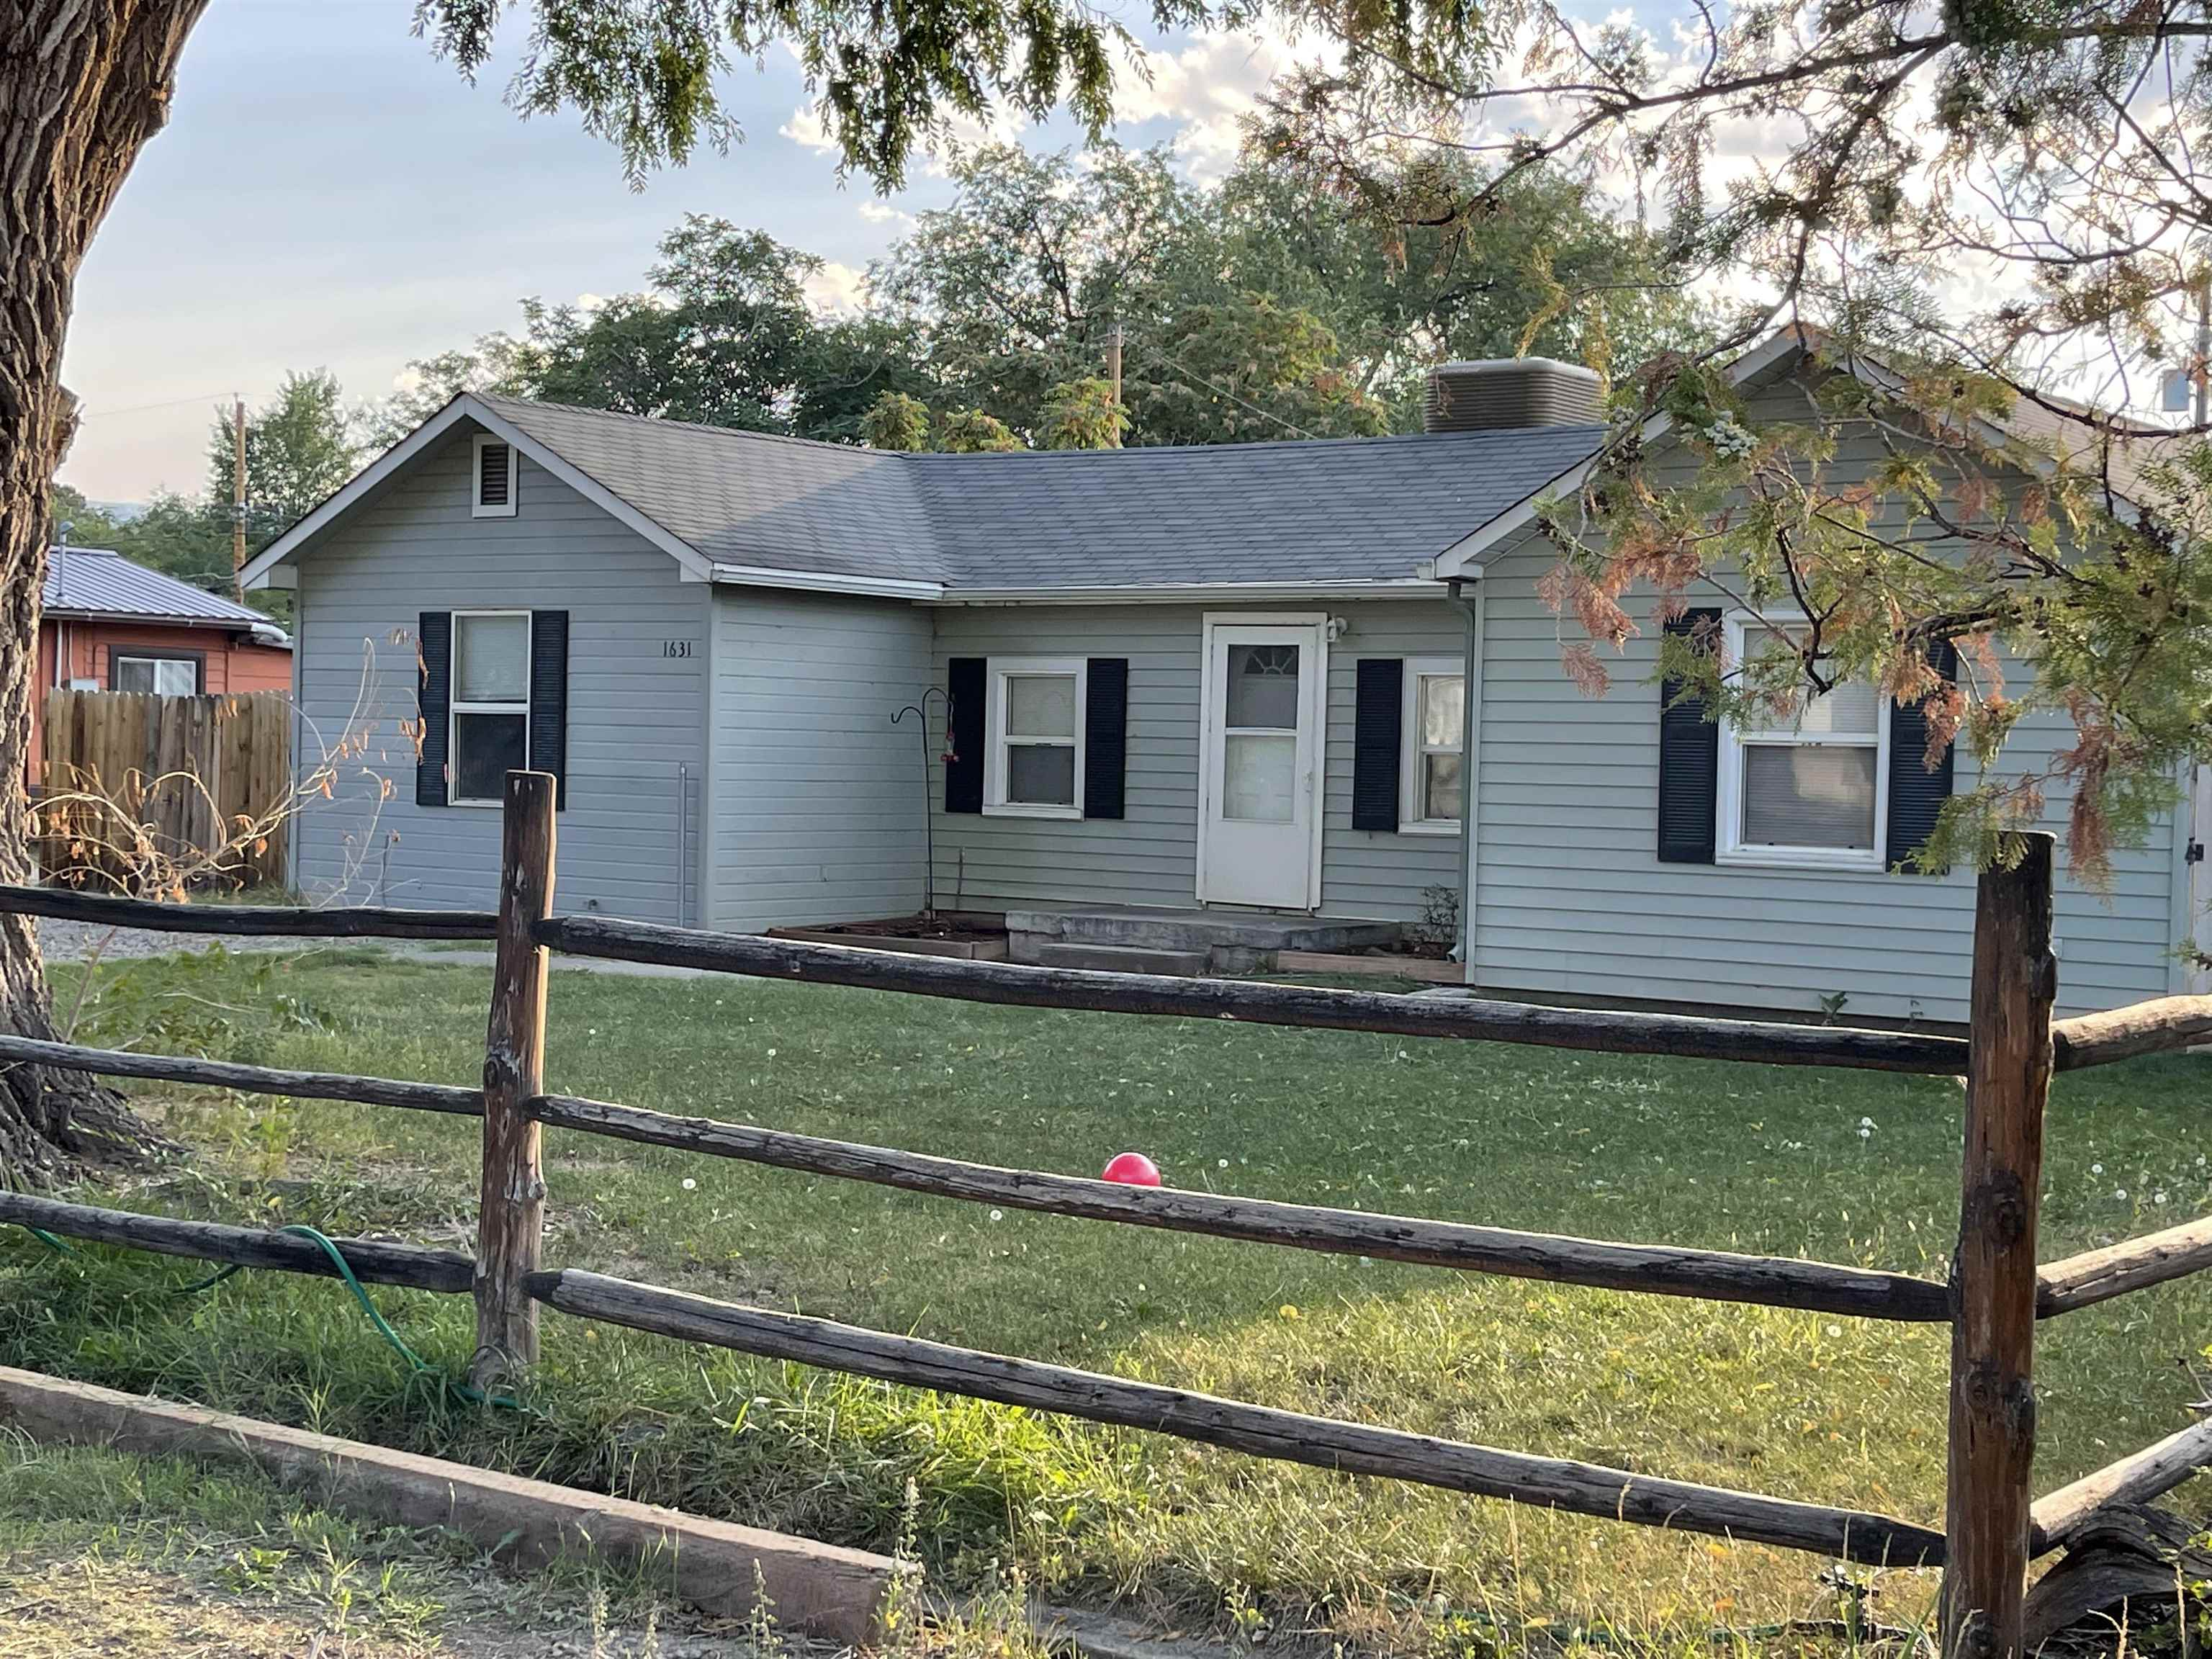 This home has a good personality and needs some love! The split bedroom floor plan with a large living room, efficient kitchen, small dining area on almost 1/4 acre, is just waiting for someone to come in and polish it up!  The home needs cosmetic work - flooring, paint and landscaping.